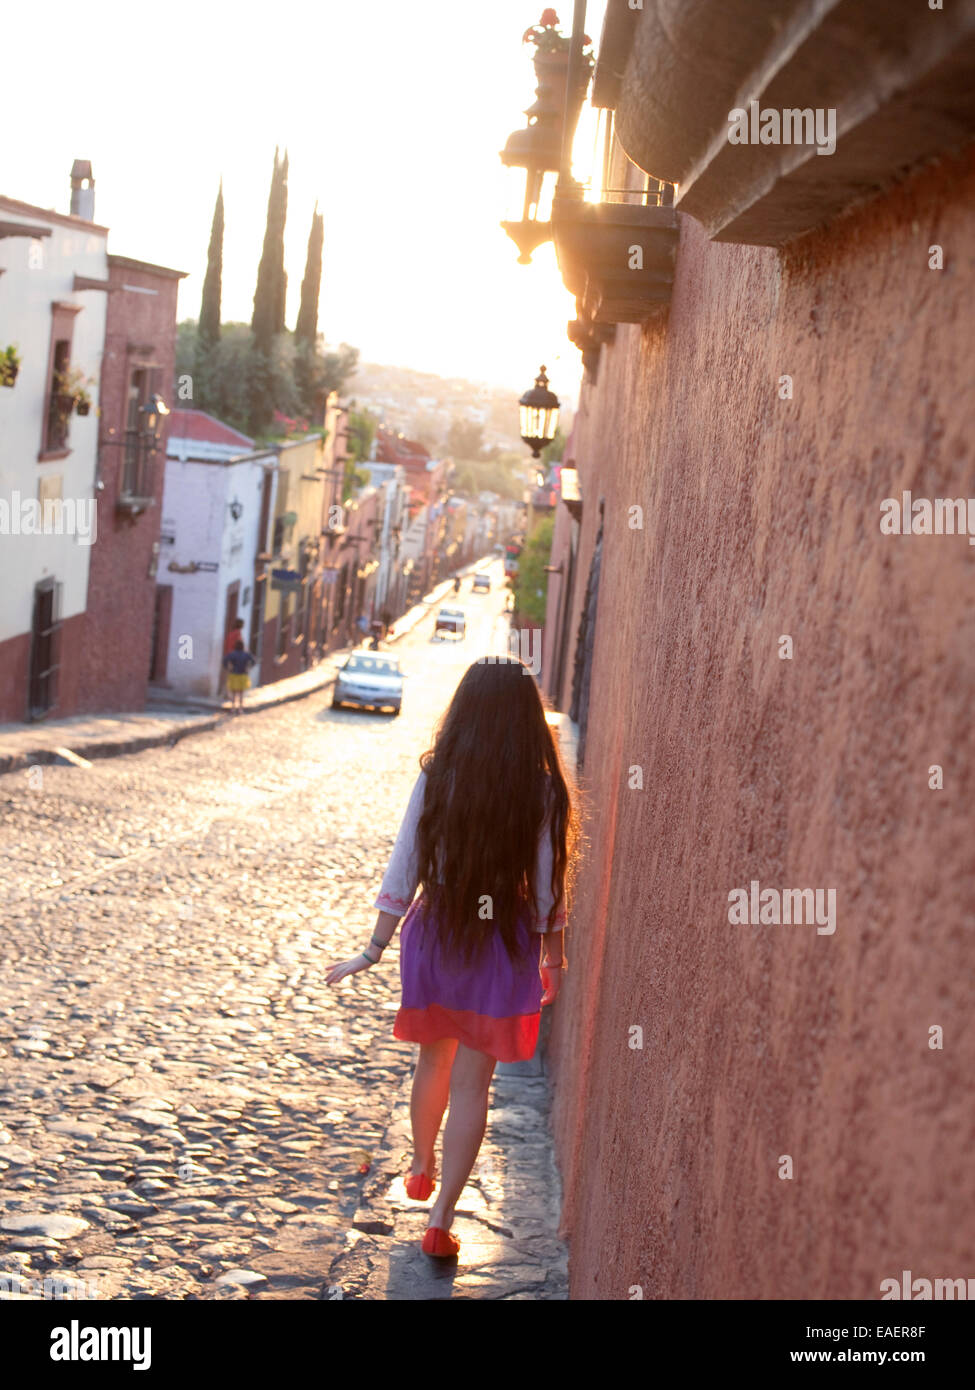 Jeune fille de village mexicain trottoir promenades Photo Stock